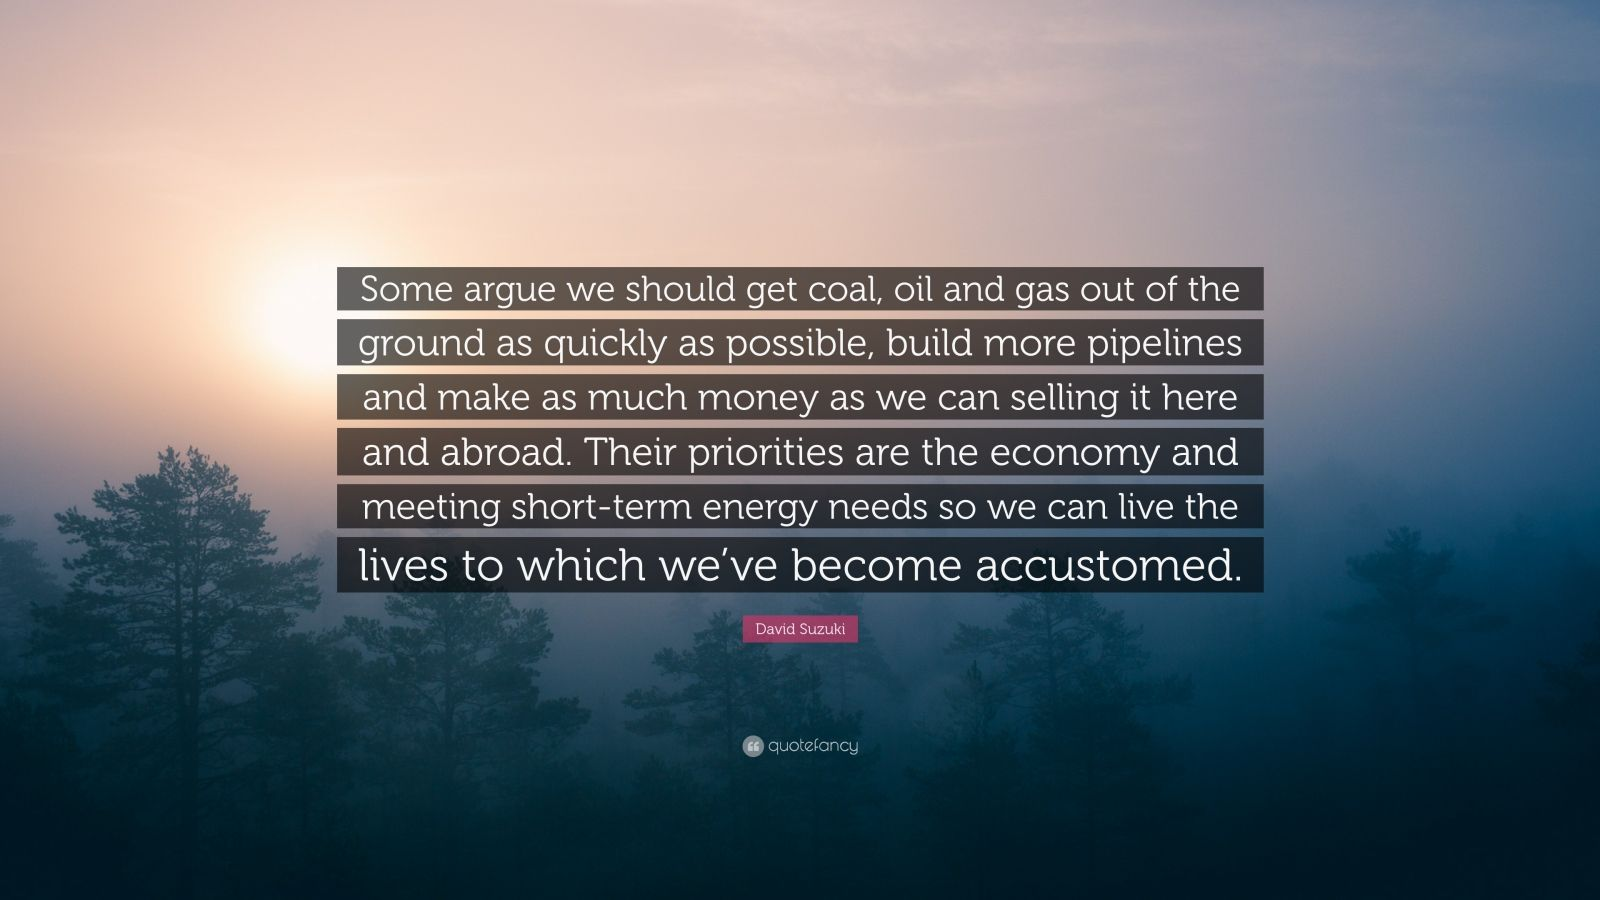 """David Suzuki Quote: """"Some argue we should get coal, oil and gas out of the ground as quickly as possible, build more pipelines and make as much money as we can selling it here and abroad. Their priorities are the economy and meeting short-term energy needs so we can live the lives to which we've become accustomed."""""""